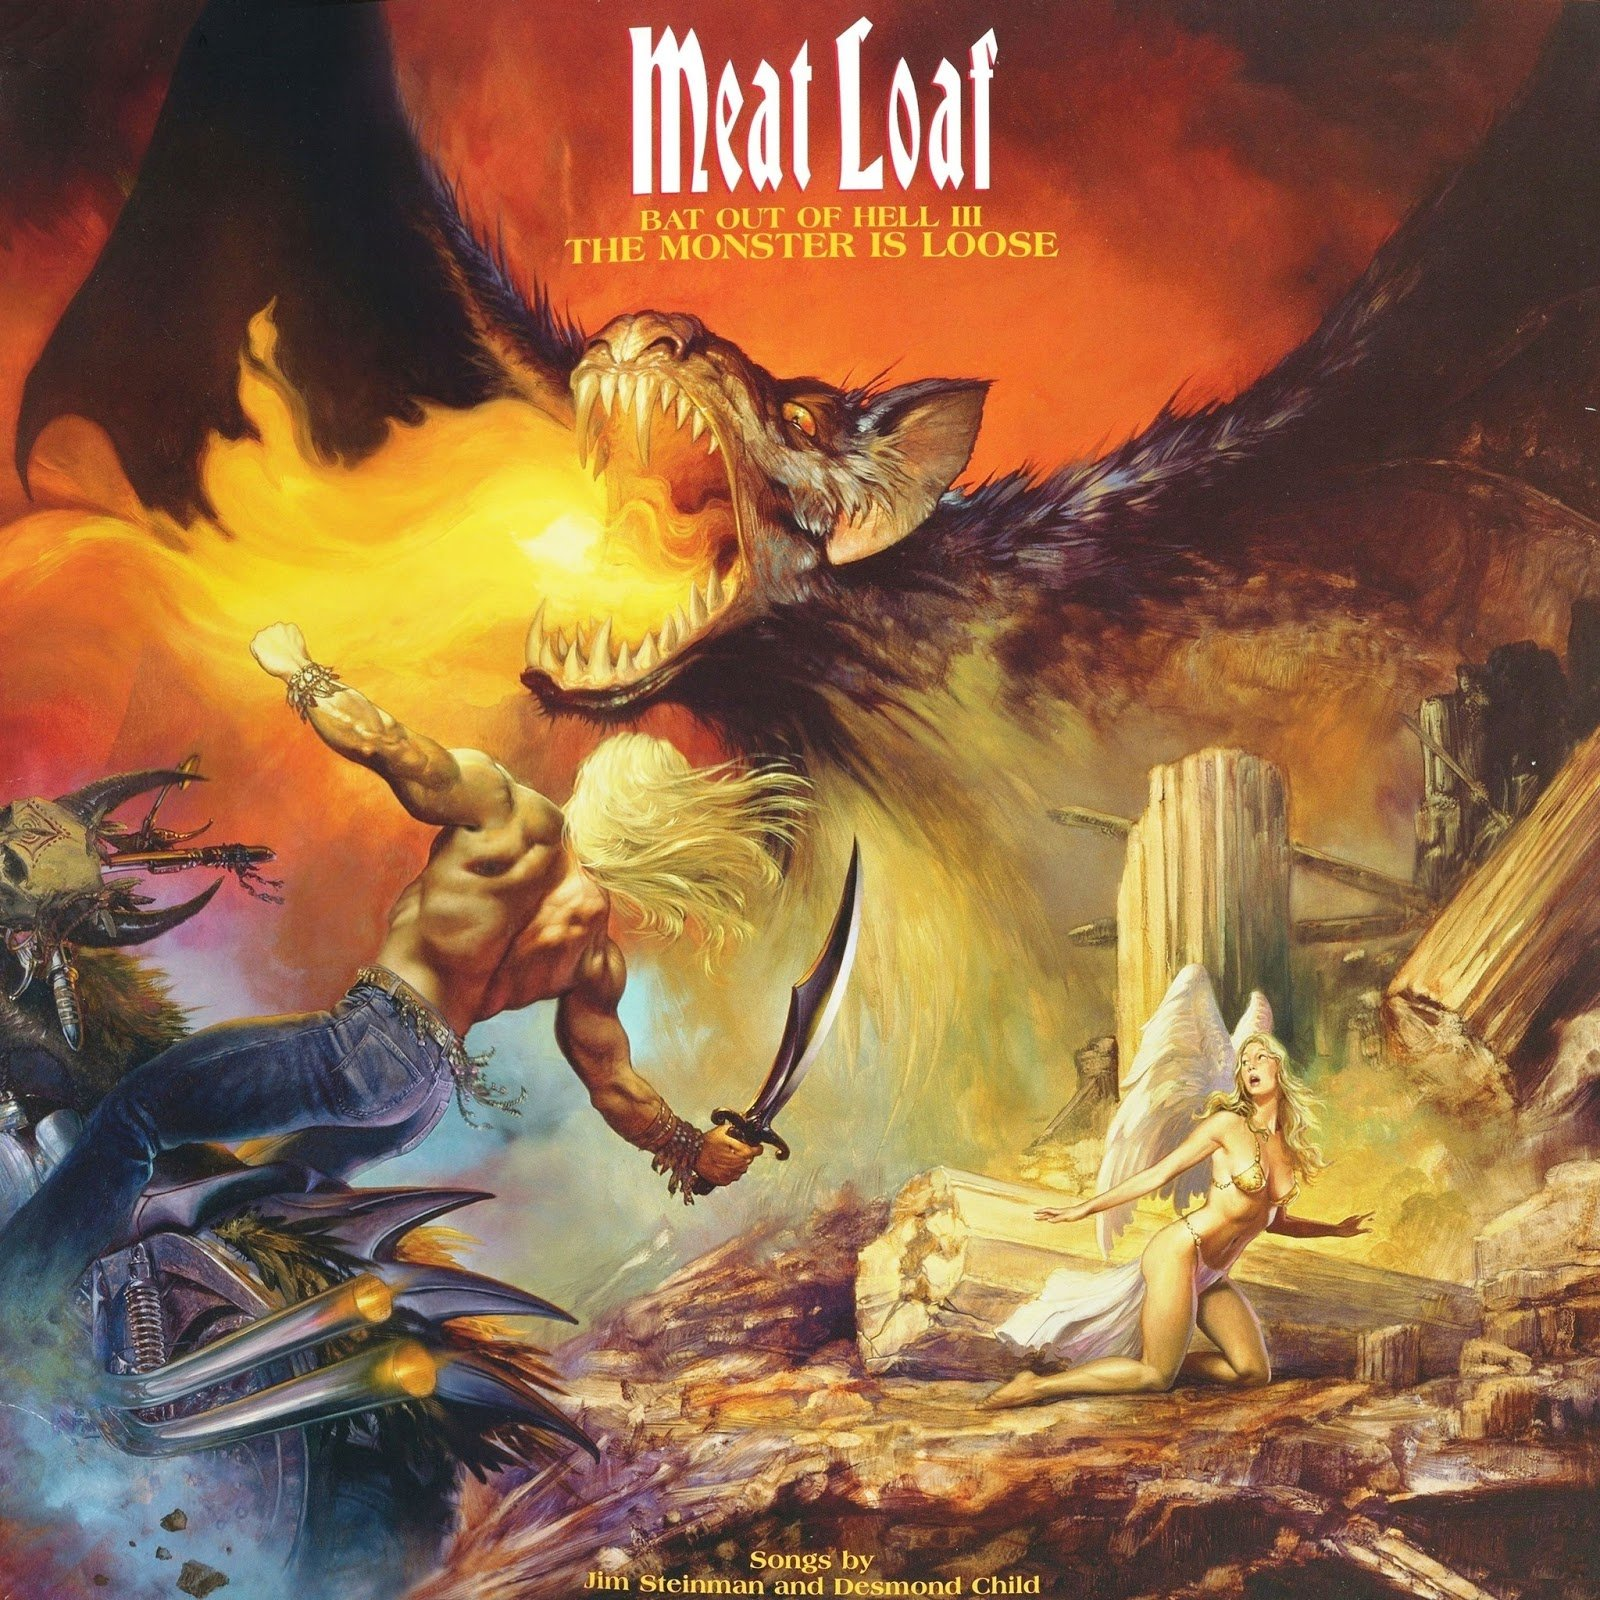 Meat Loaf, Bat Out Of Hell III